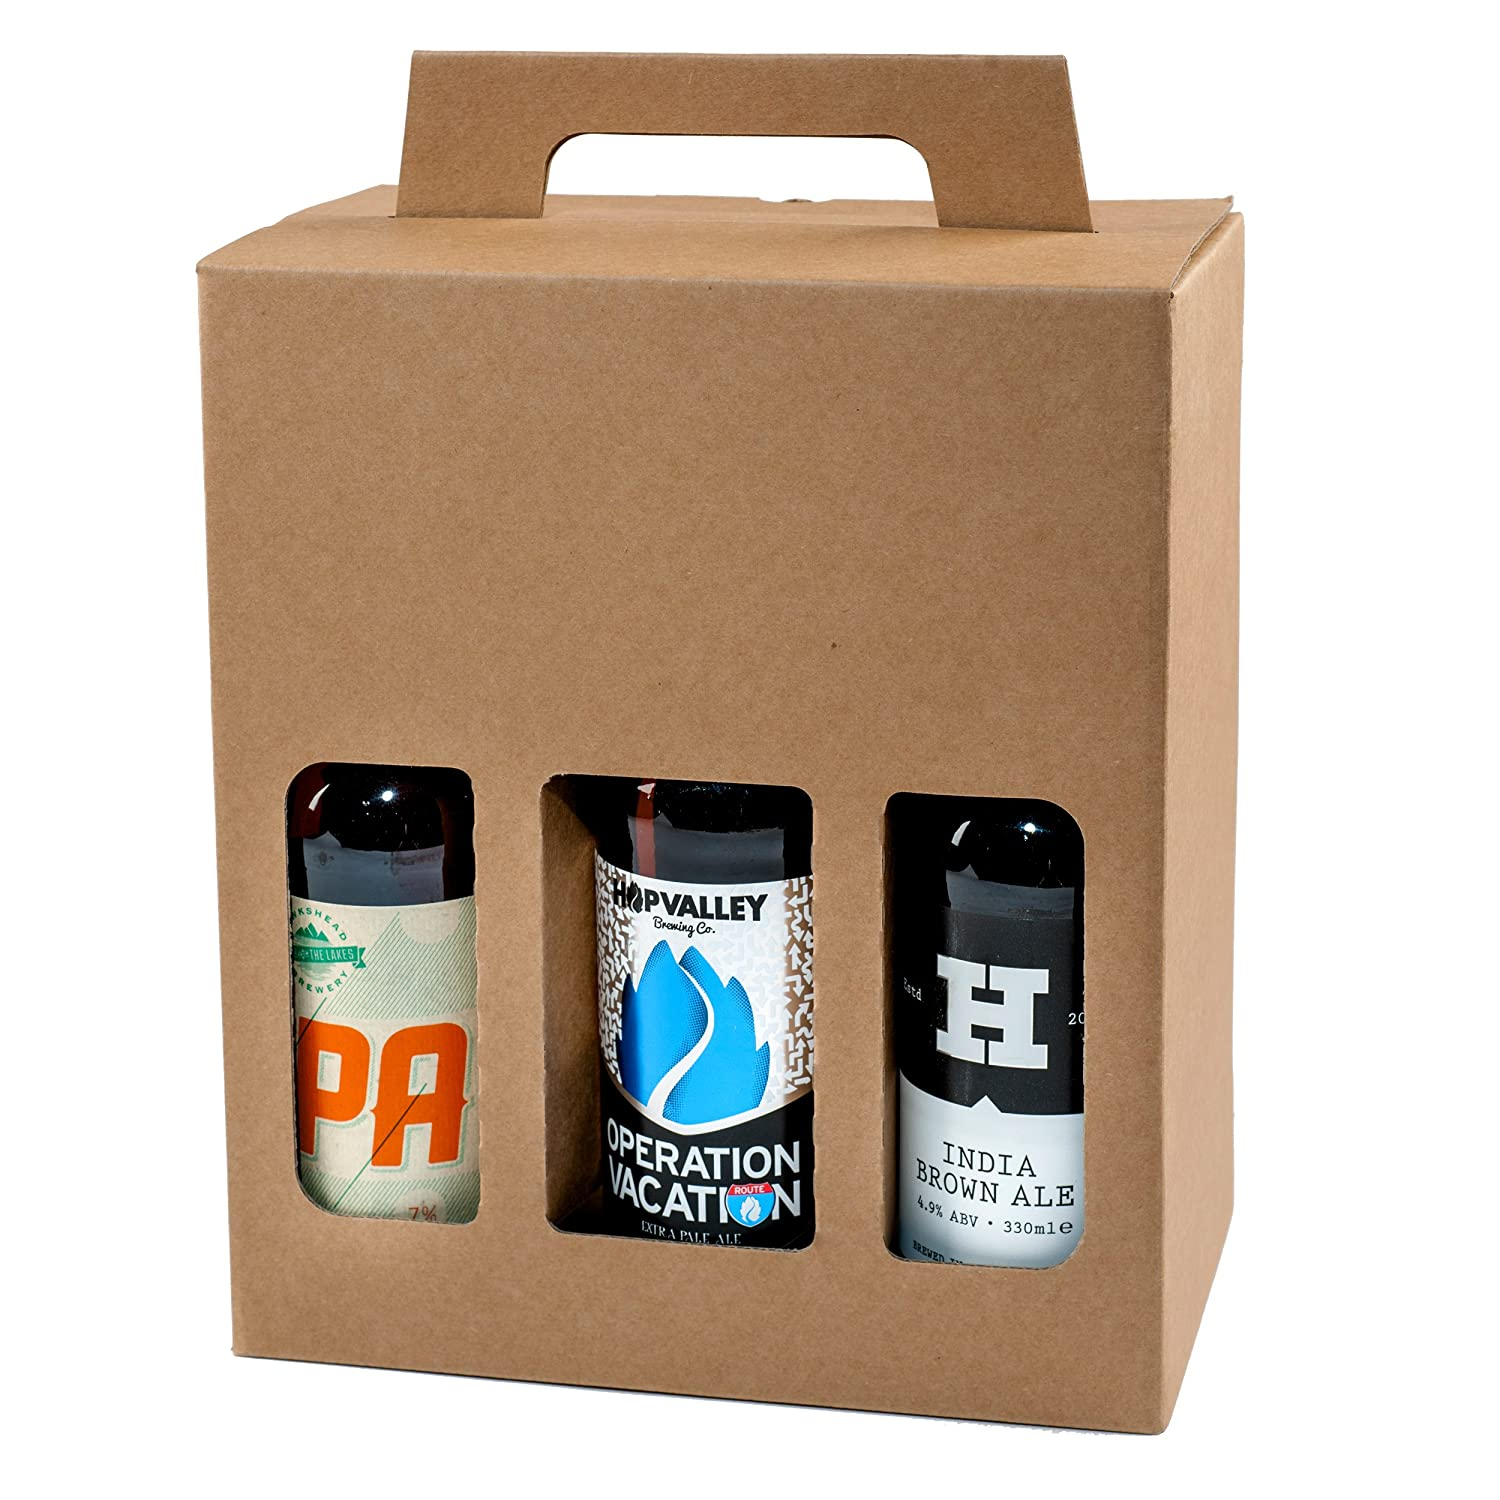 Cardboard Bottle Carriers for 6 x 330ml Beer and Cider Bottles - Strong Boxes - An Excellent Gift or Present Idea for Special Occasions - Great for Birthdays / Fathers Day / Christmas etc - Qty 10 x Boxes Drinks Packaging